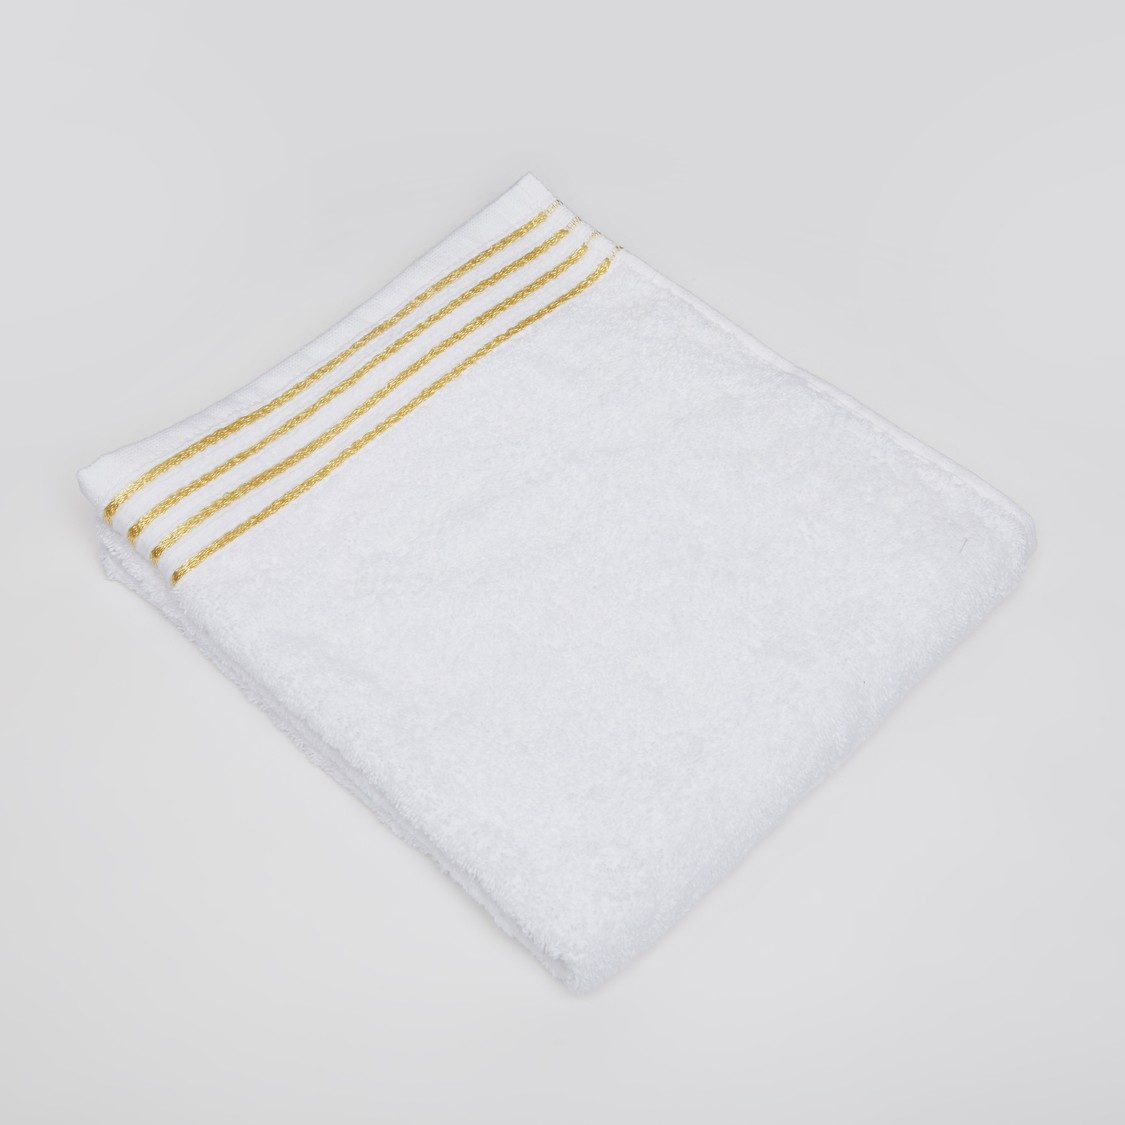 Textured Hand Towel with Glitter Stripes - 80x50 cms